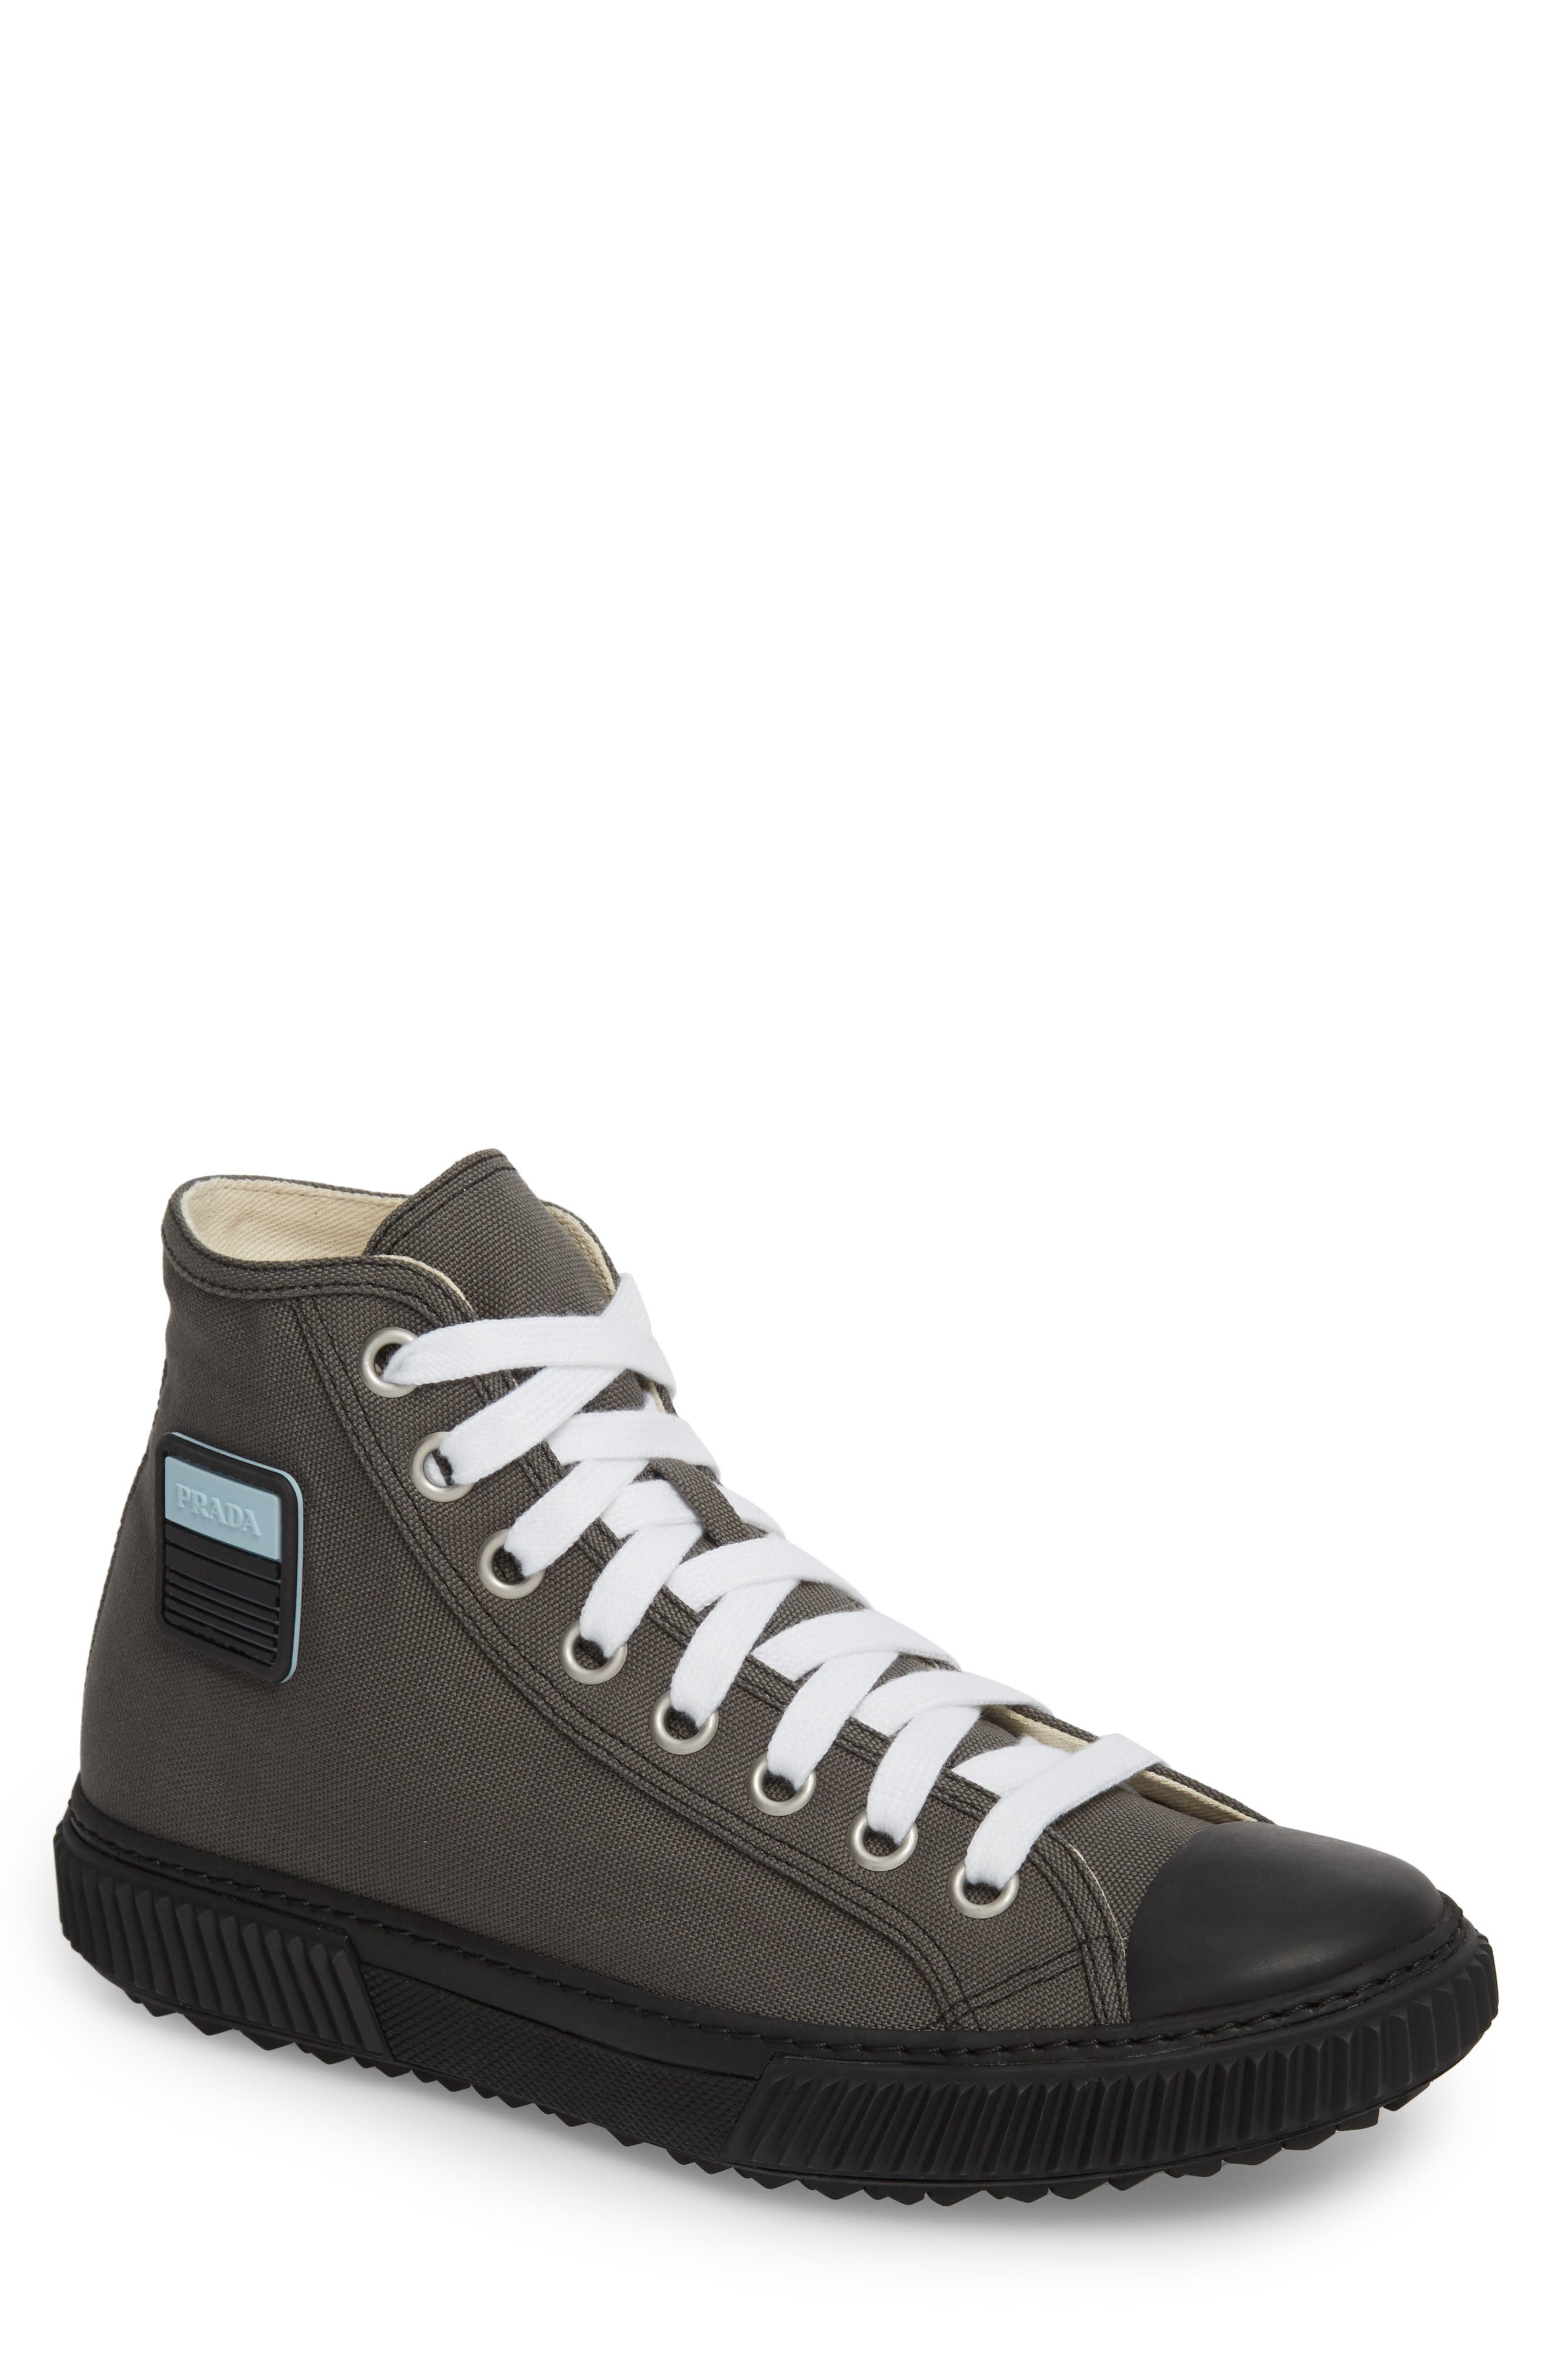 Cap Toe High Top Sneaker,                             Main thumbnail 1, color,                             Ardesia Nero